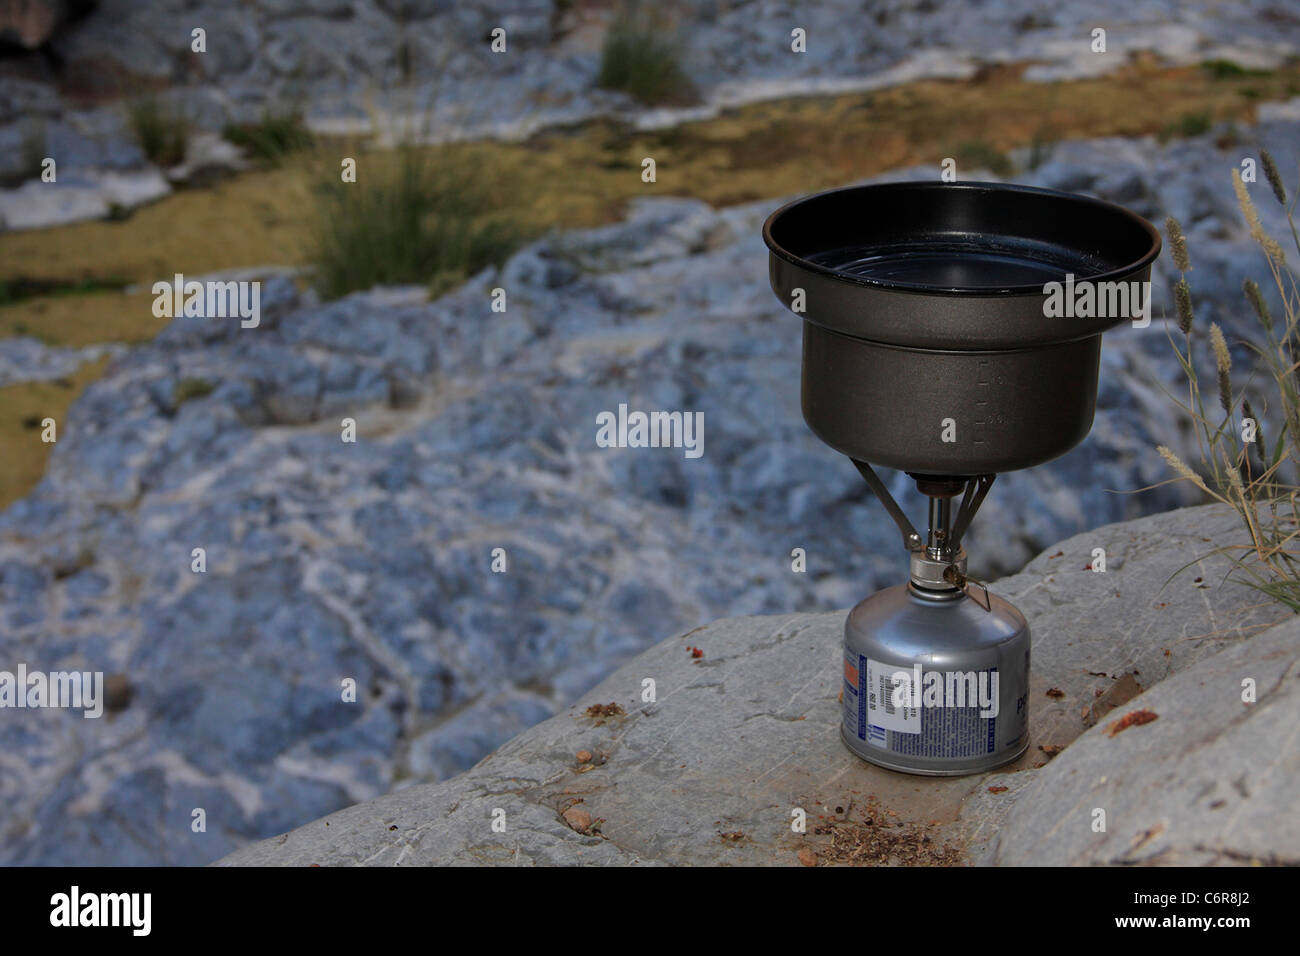 Camping stove and pot on rock ledge - Stock Image